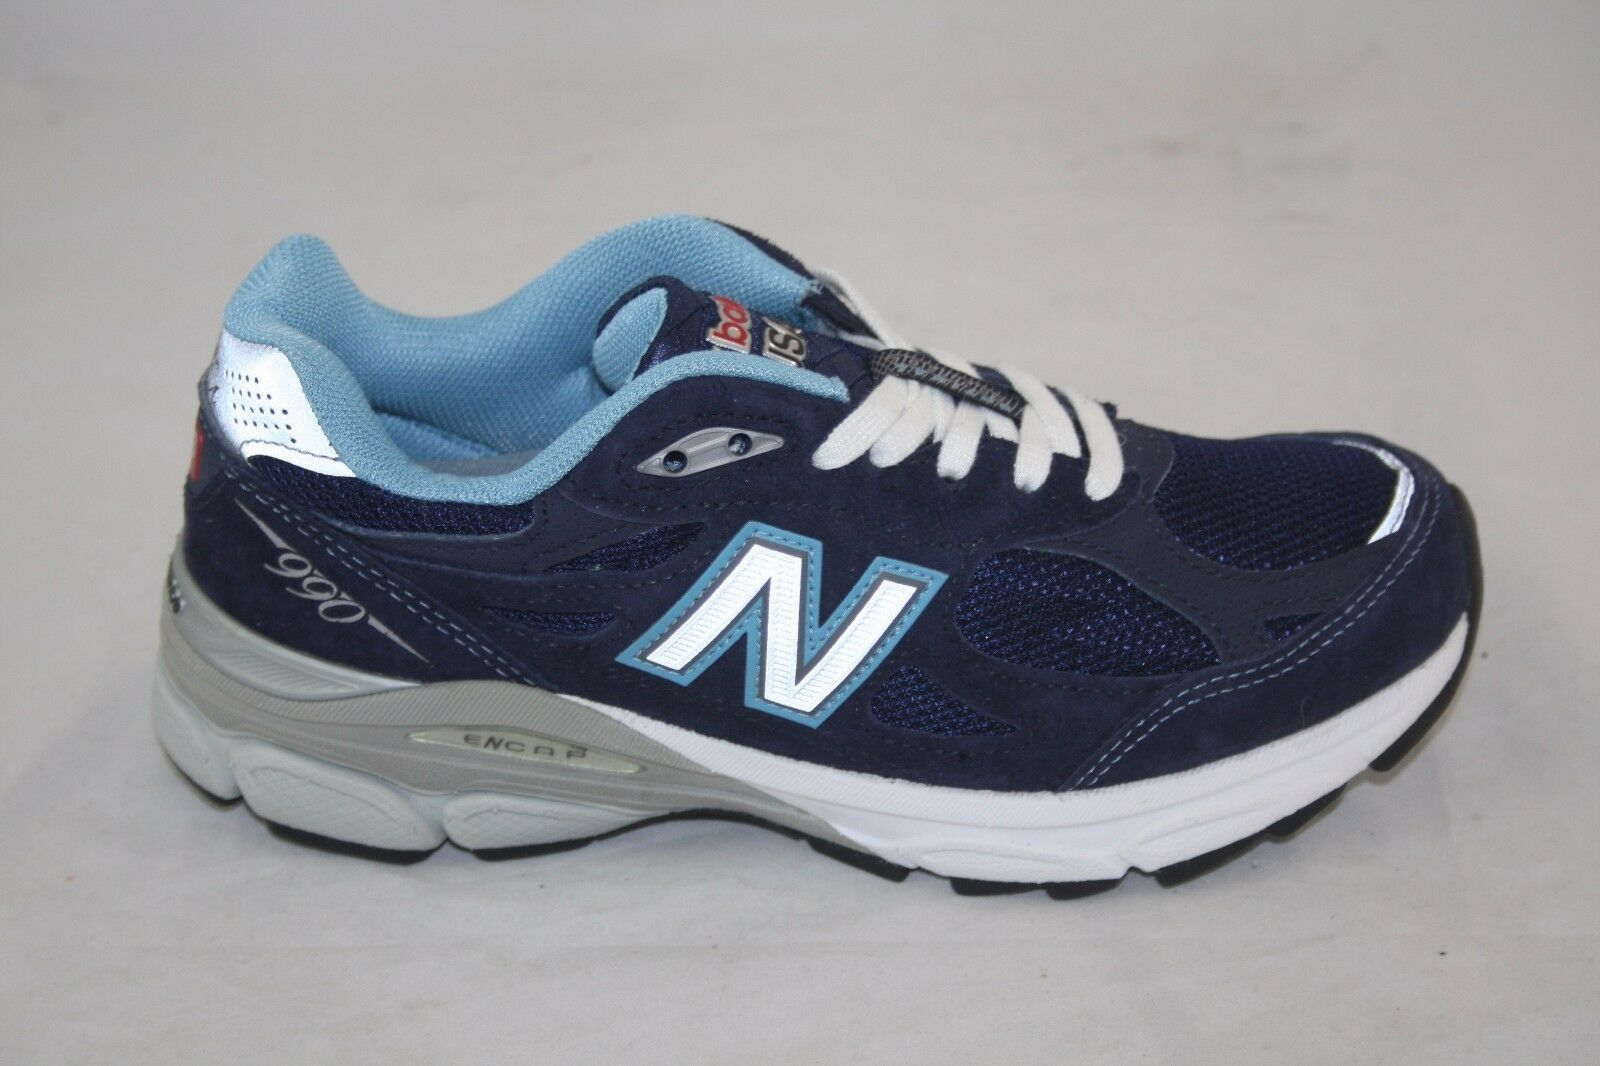 WMN'S NEW BALANCE W990NV3 RUNNING NAVY MADE IN USA SIZE 5.5 MSRP 155.00